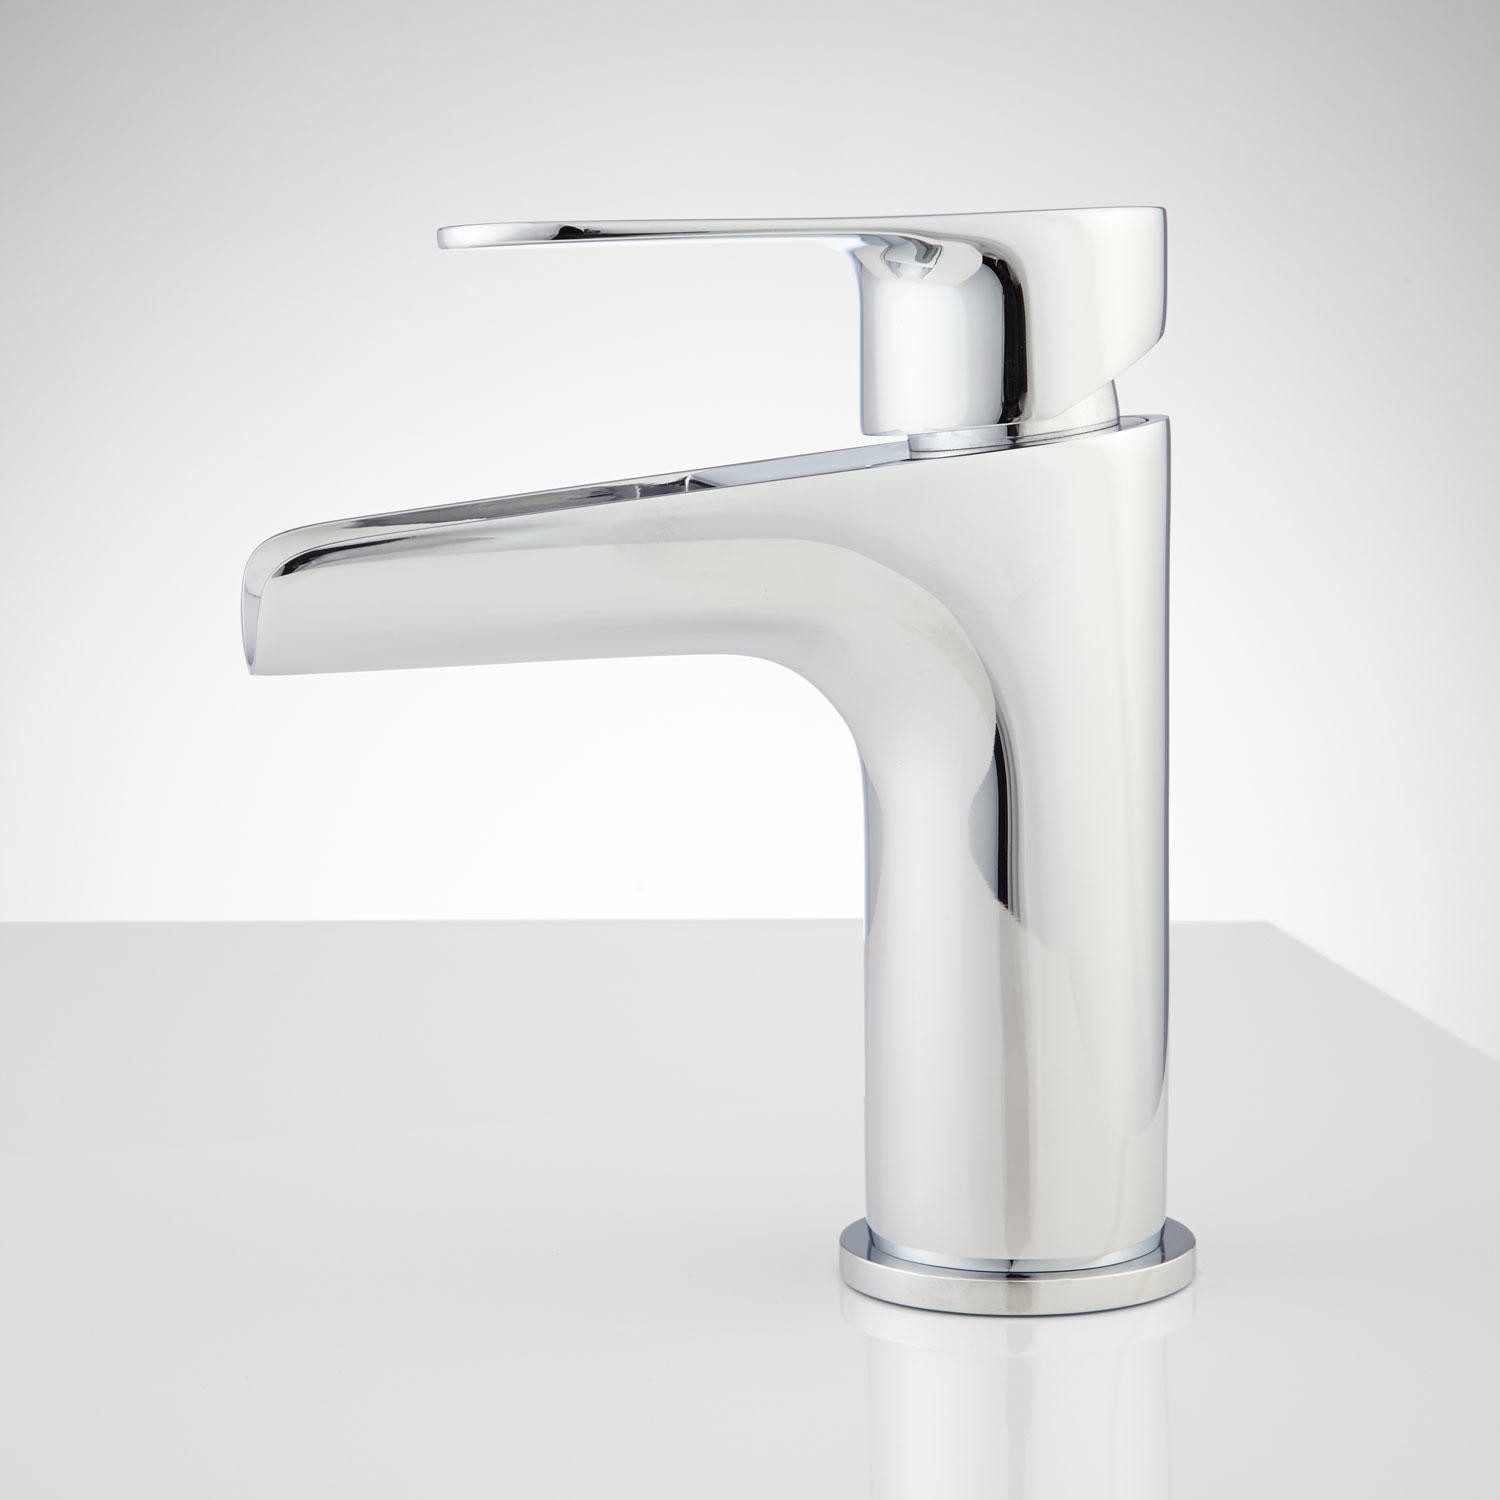 Best ideas about Waterfall Bathroom Faucet . Save or Pin Pagosa Waterfall Single Hole Bathroom Faucet Bathroom Now.